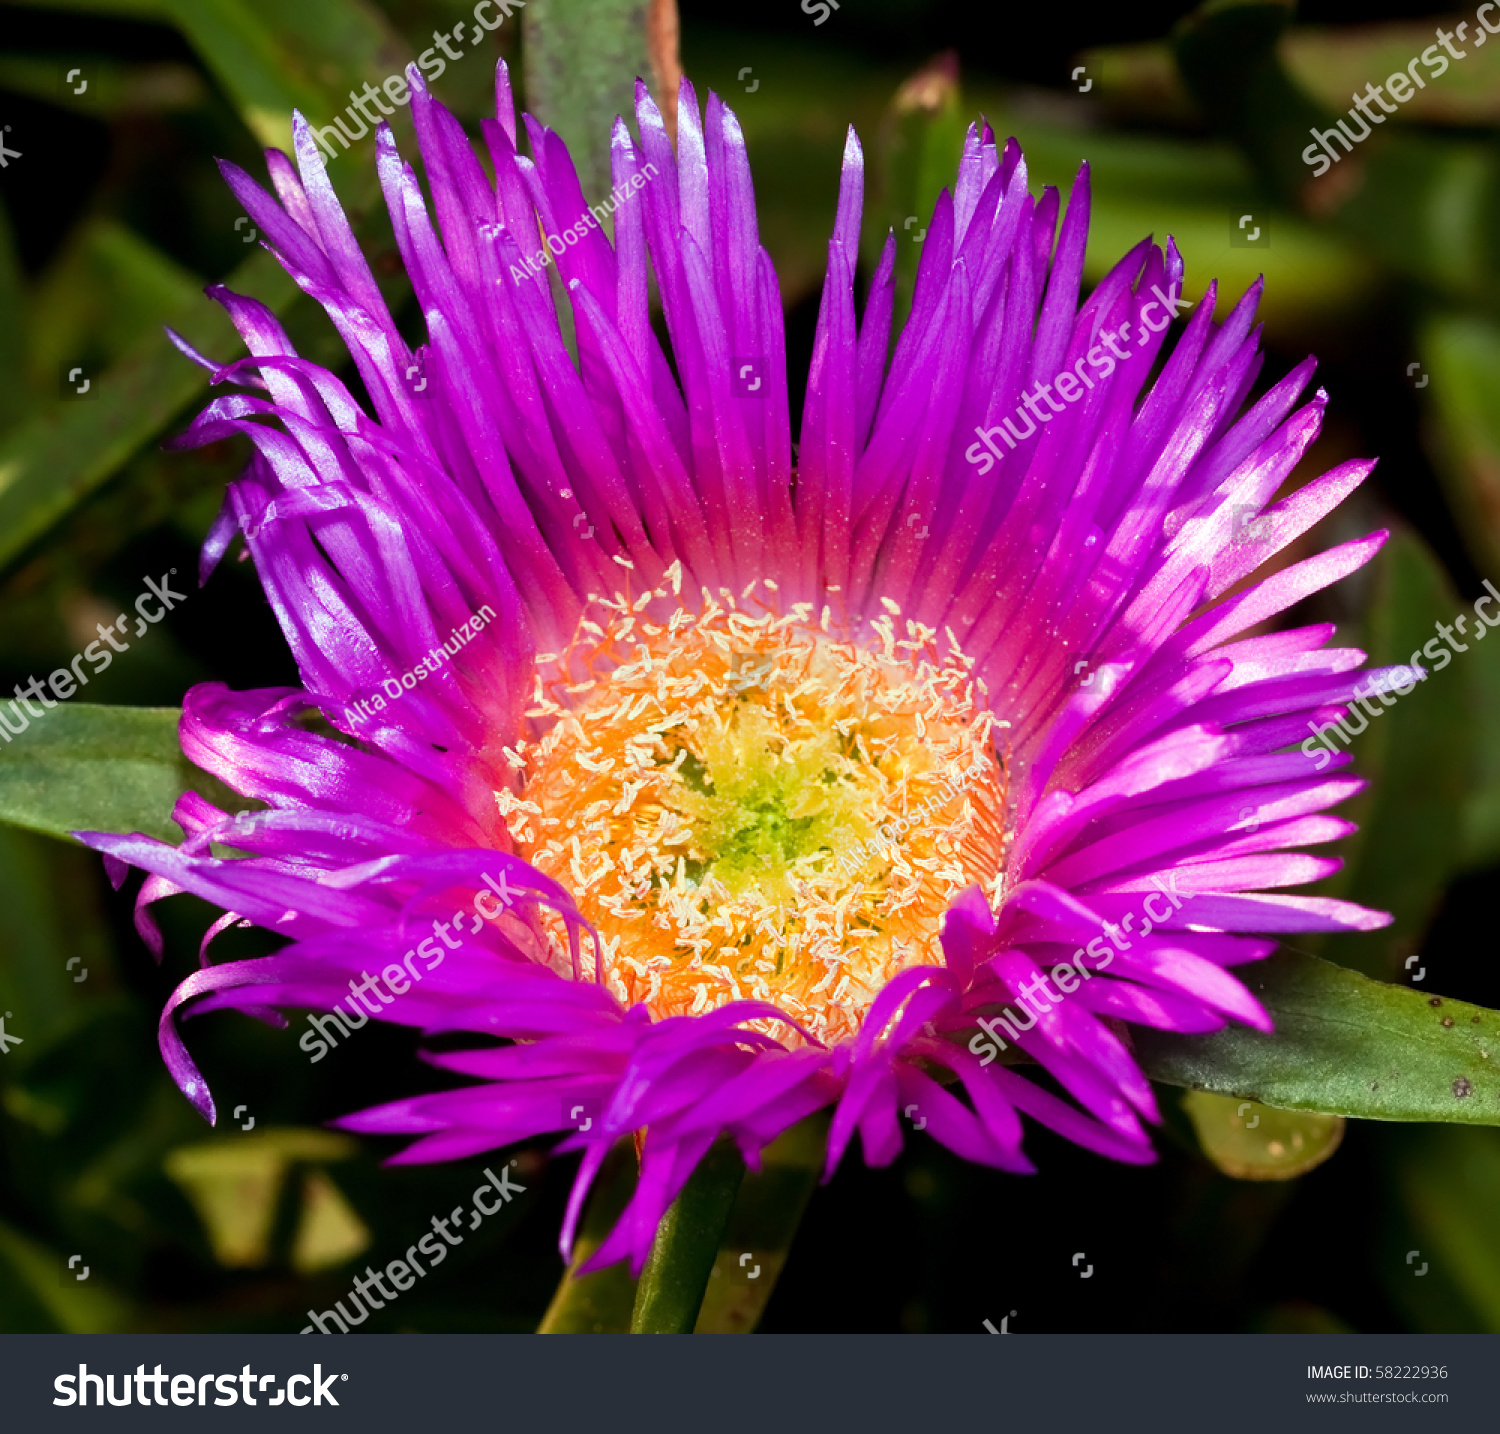 macro of purple flower with bright yellow center with detail stock, Beautiful flower